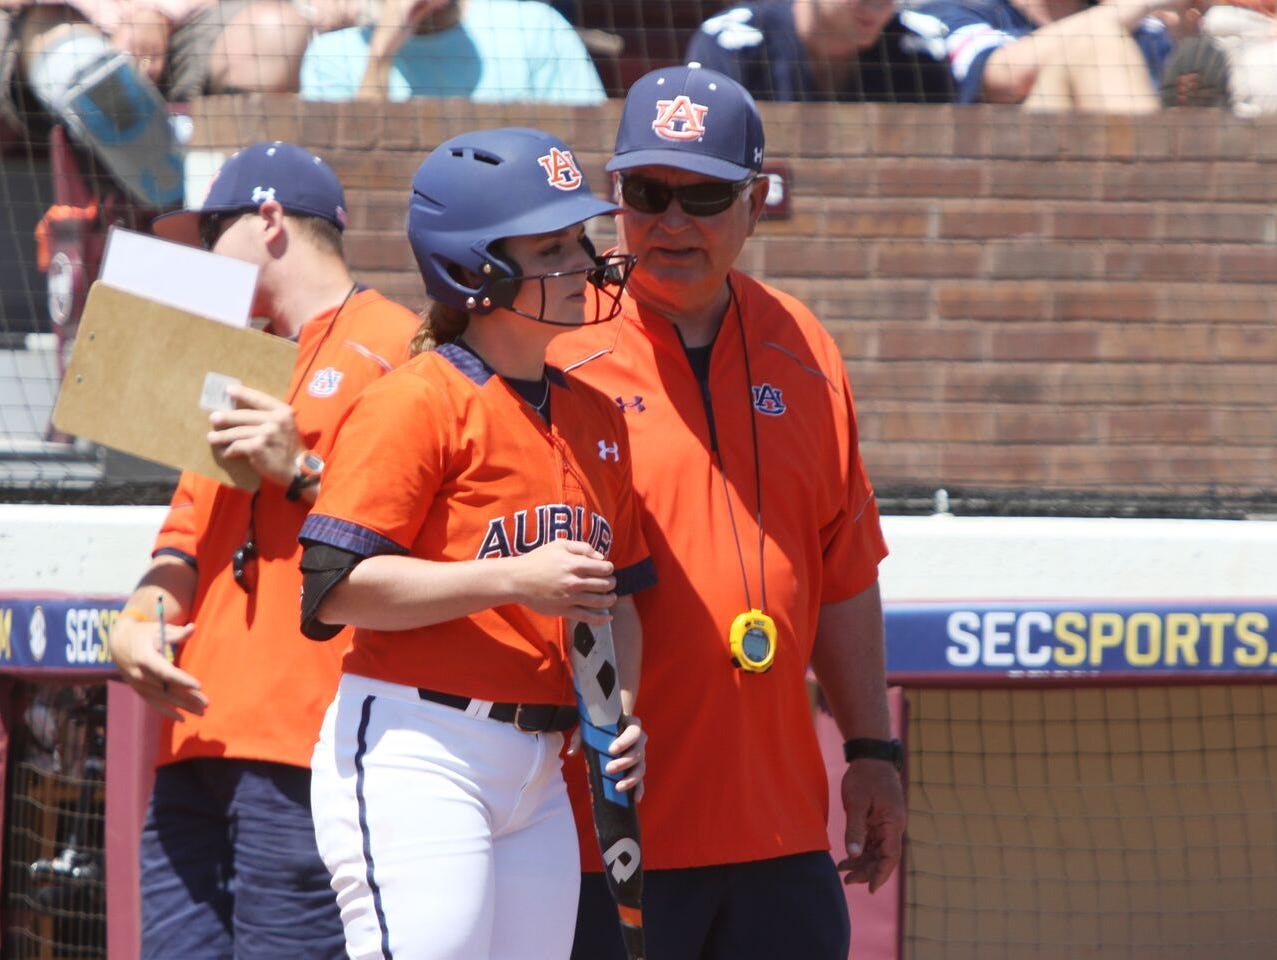 Auburn junior Haley Fagan talking to Auburn coach Clint Myers before an at-bat in SEC Tournament quarterfinal 6-4 win over Alabama on May 13, 2016.